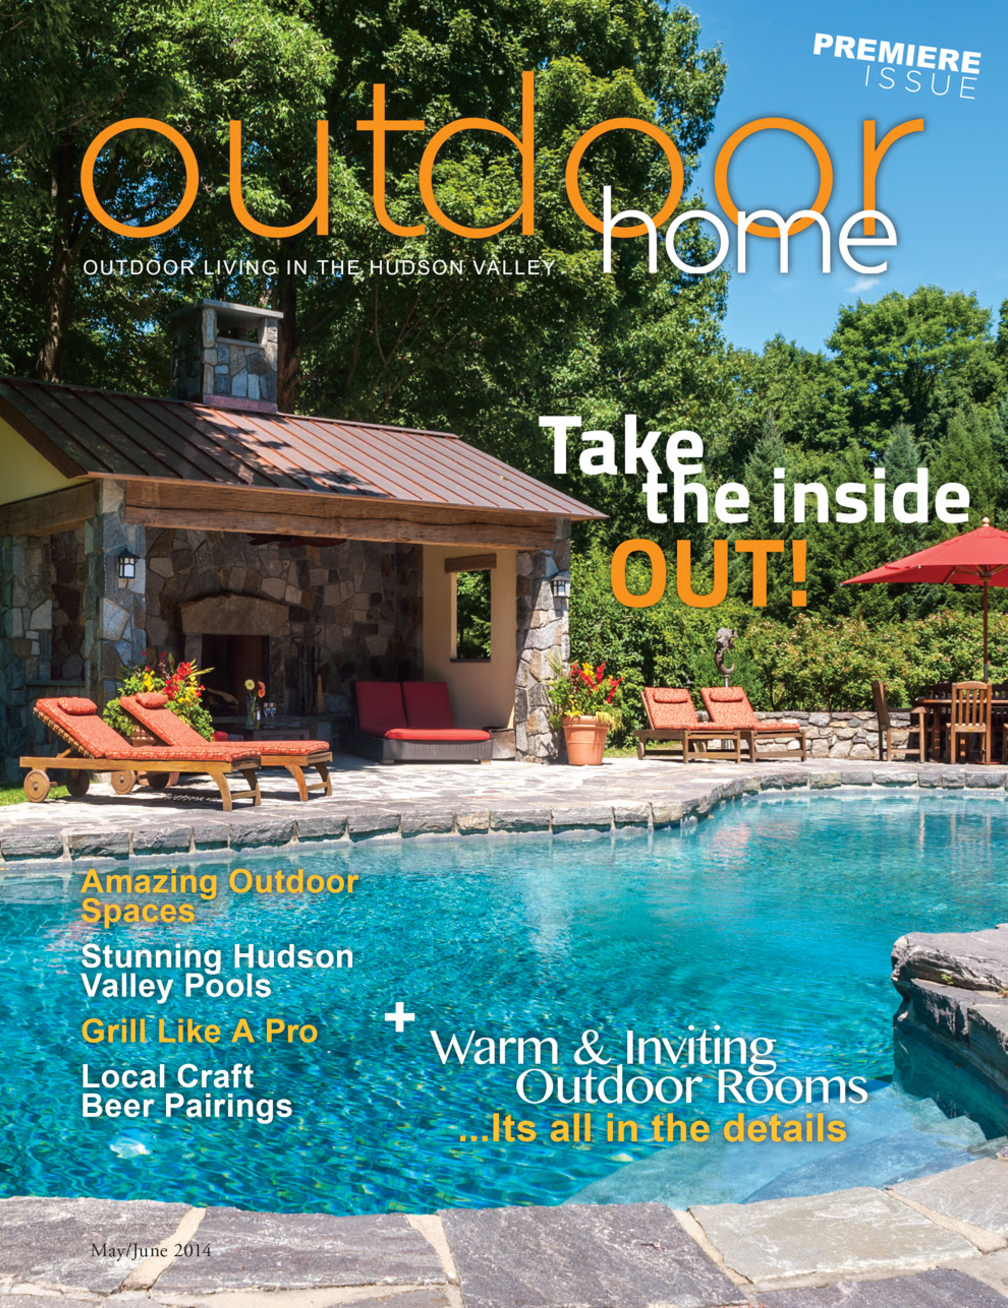 architect westchester county, ny FEATURED IN OUTDOOR HOME MAGAZINE